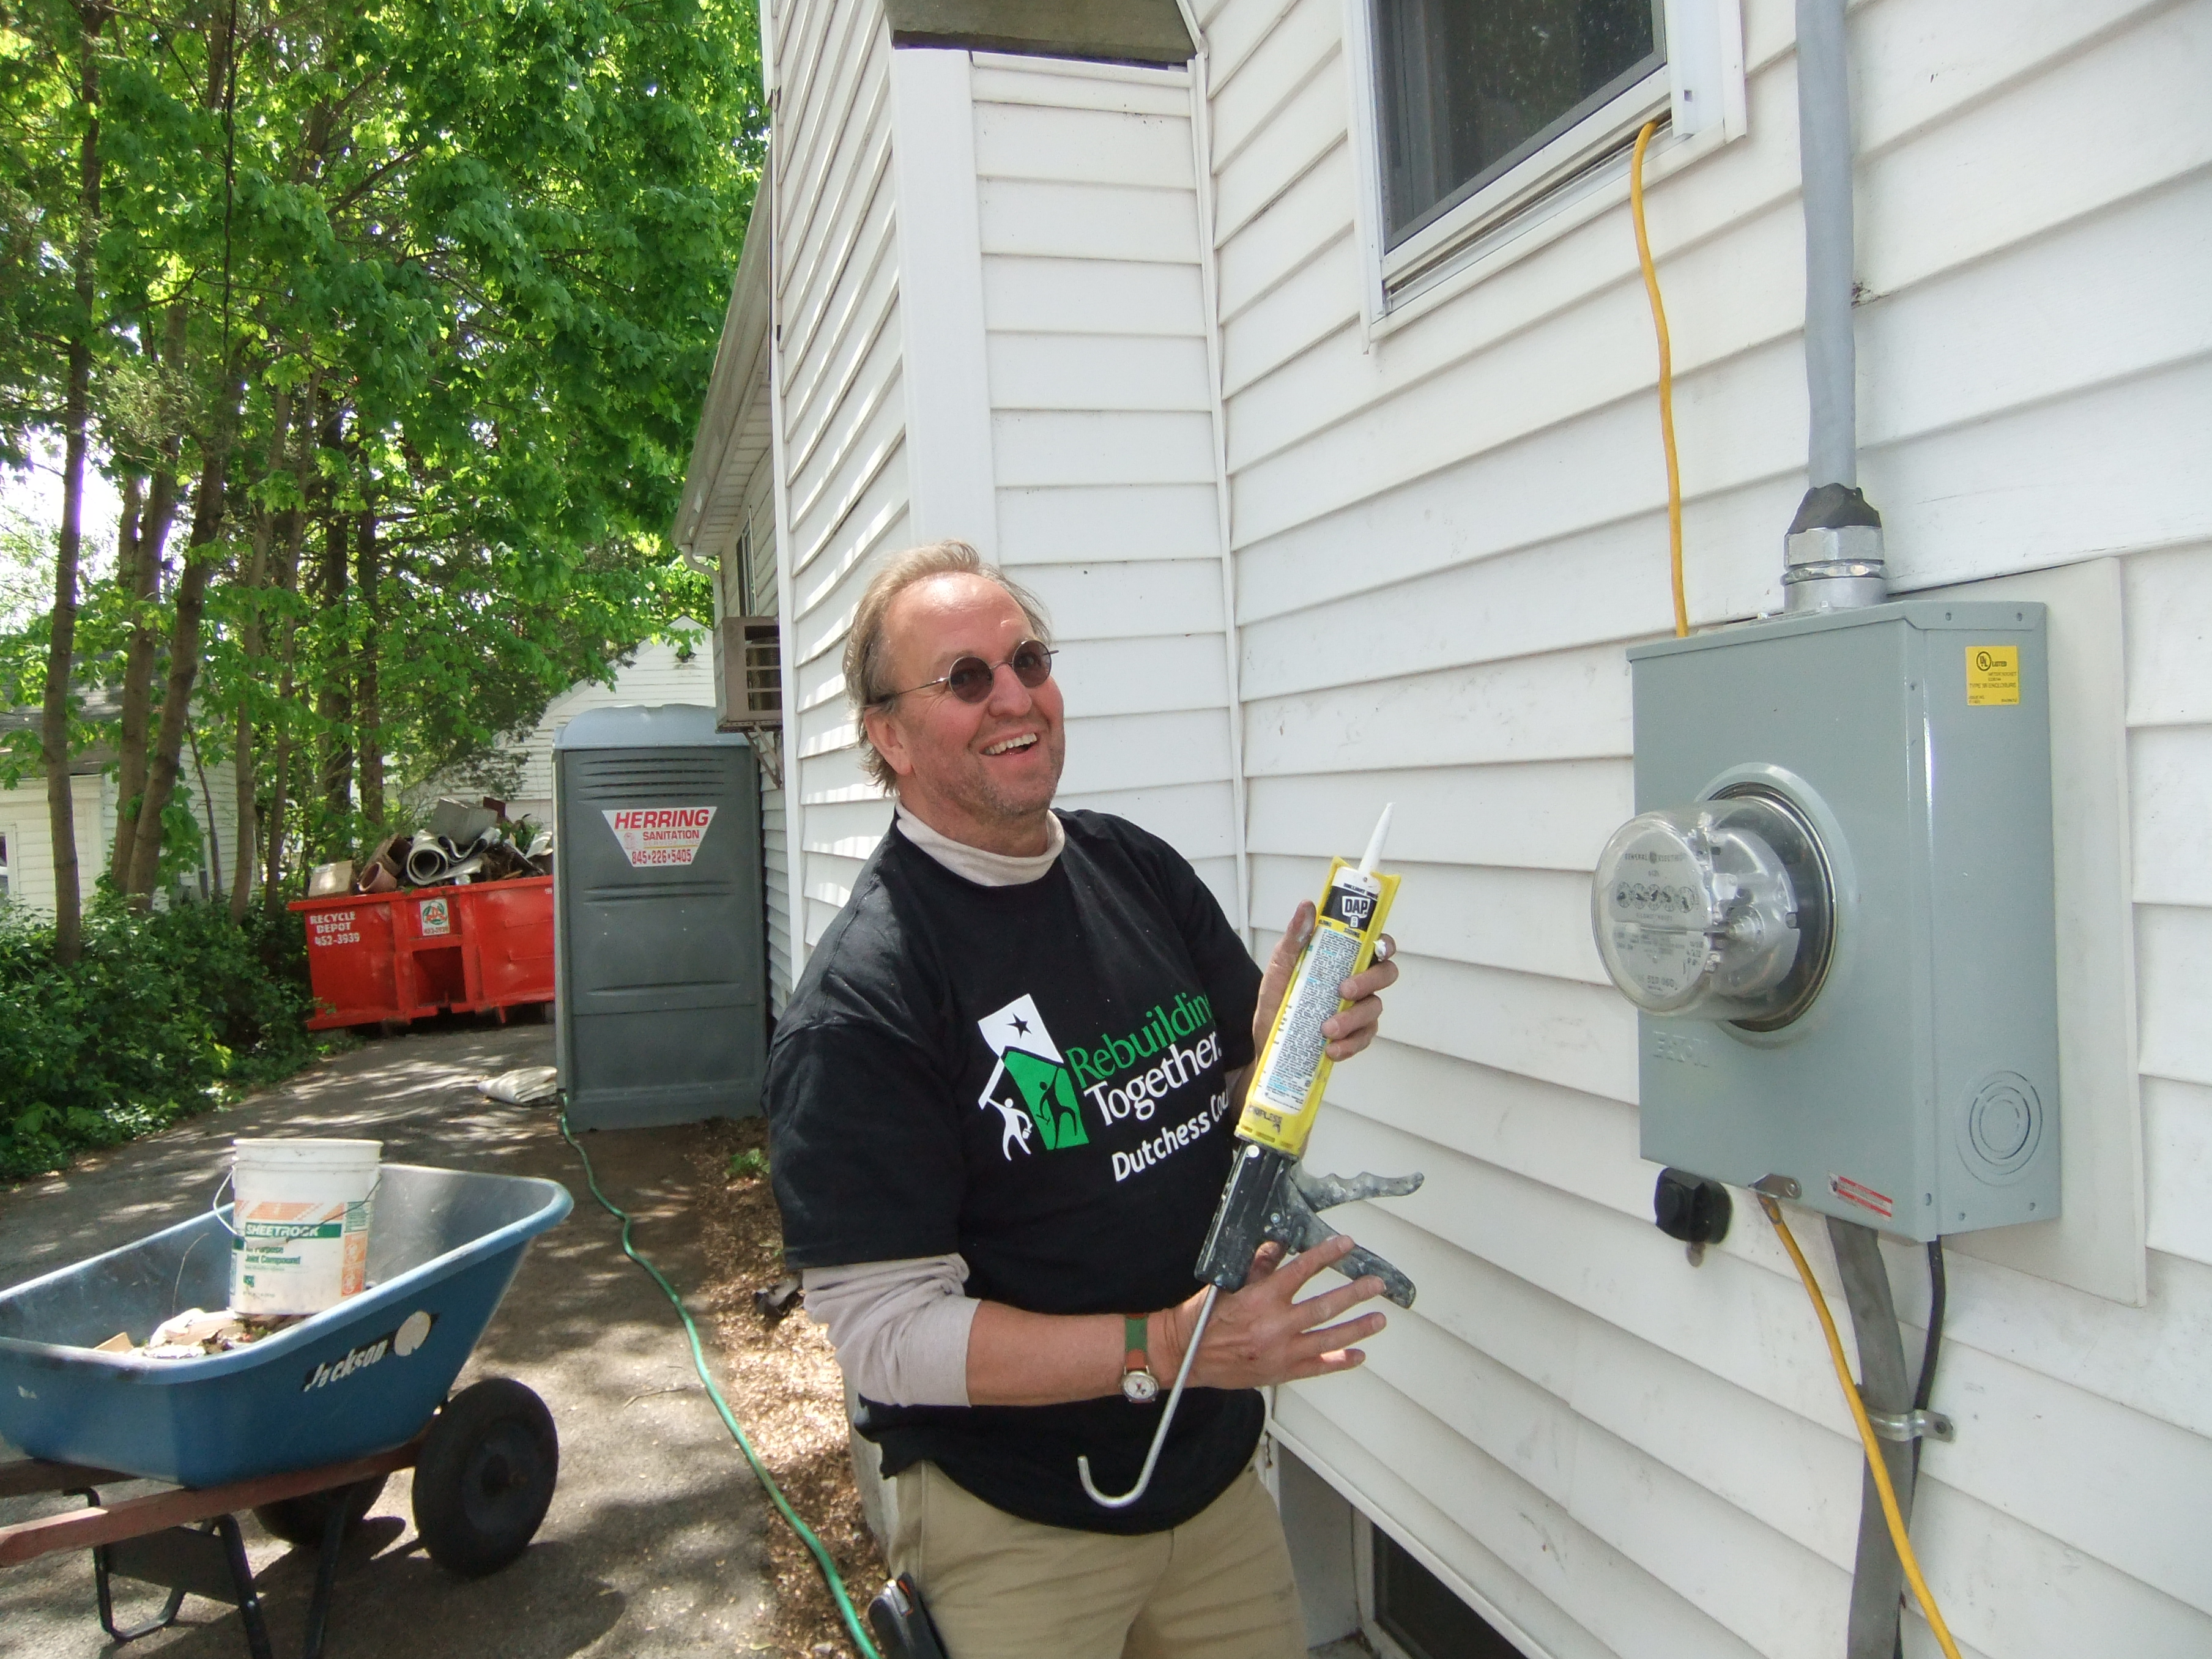 Don Veith volunteering on a Rebuilding Day project